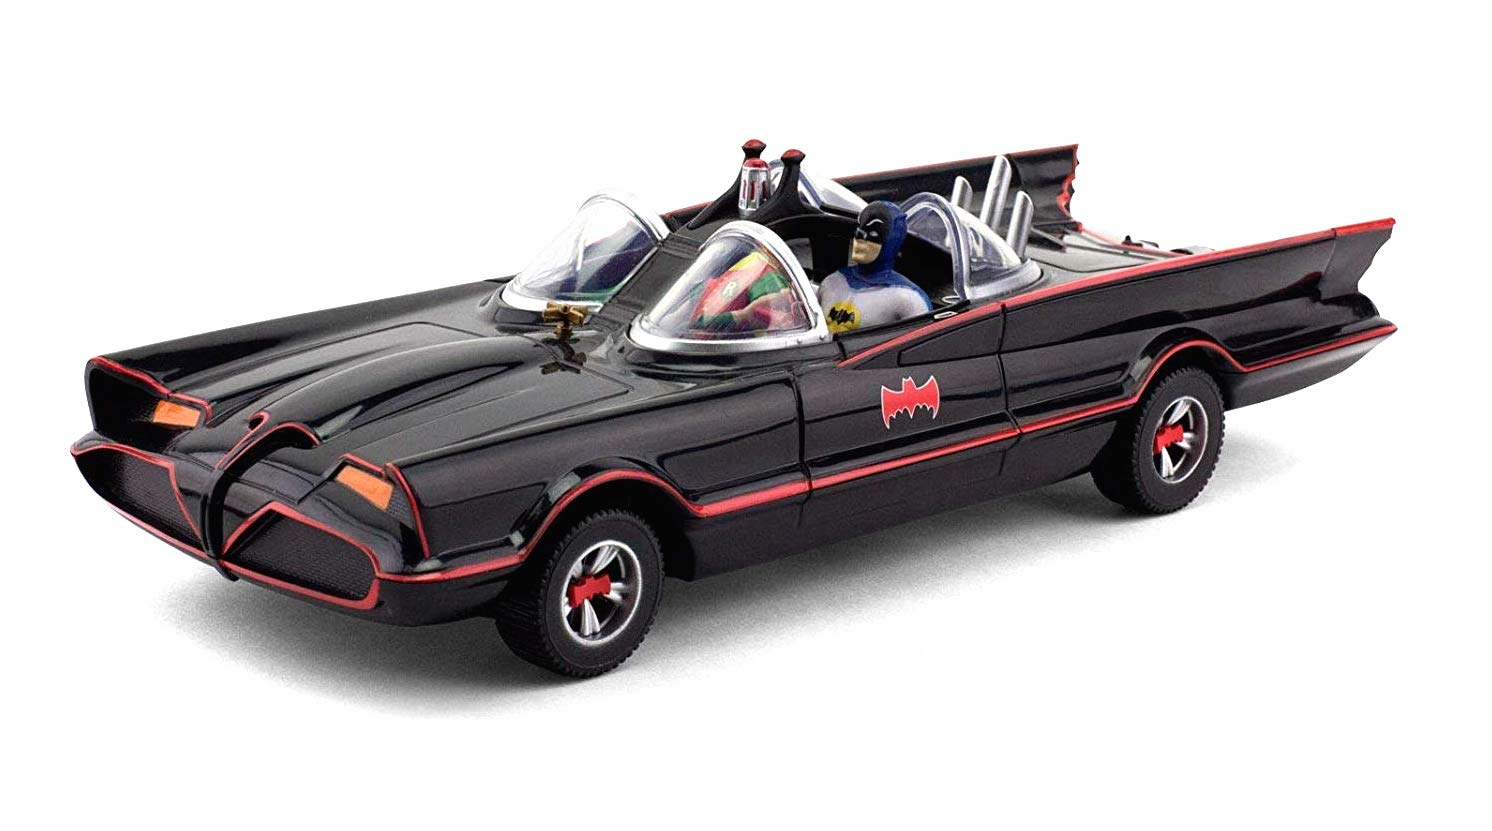 suncountry926 Suncountry628 Childrens Christmas Batmible Toy Car Gift